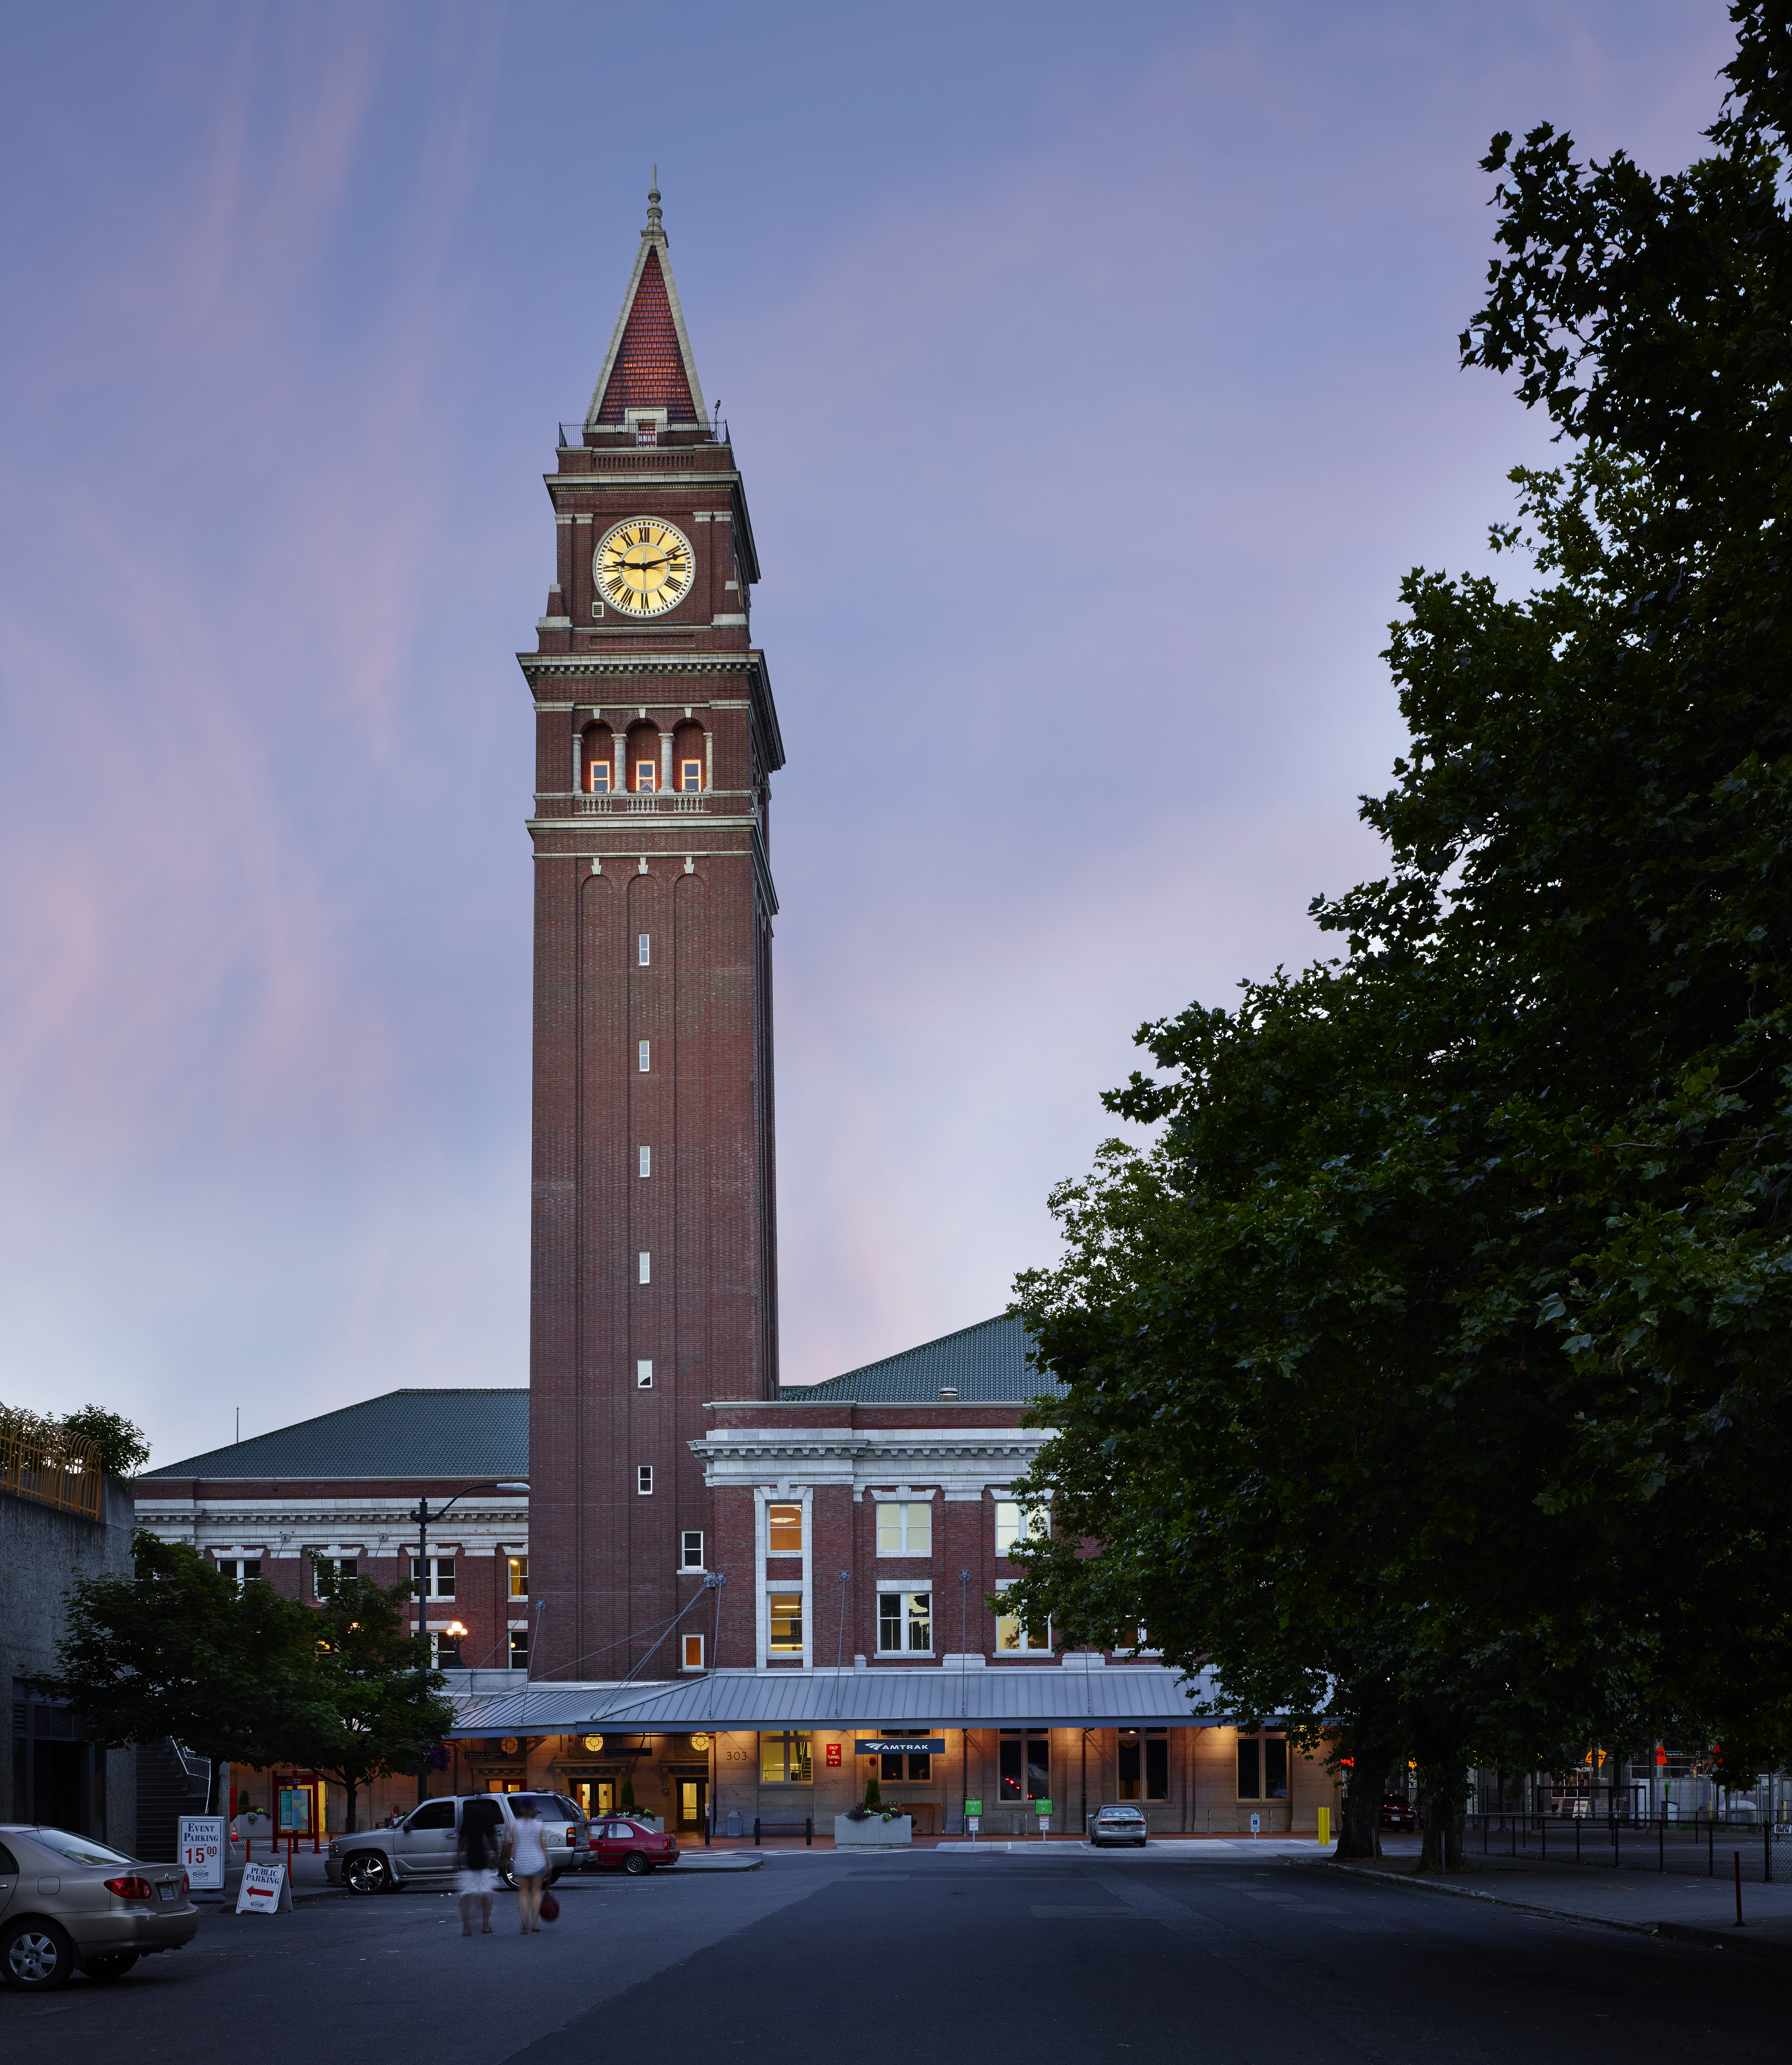 King Street Station (image from the City of Seattle)